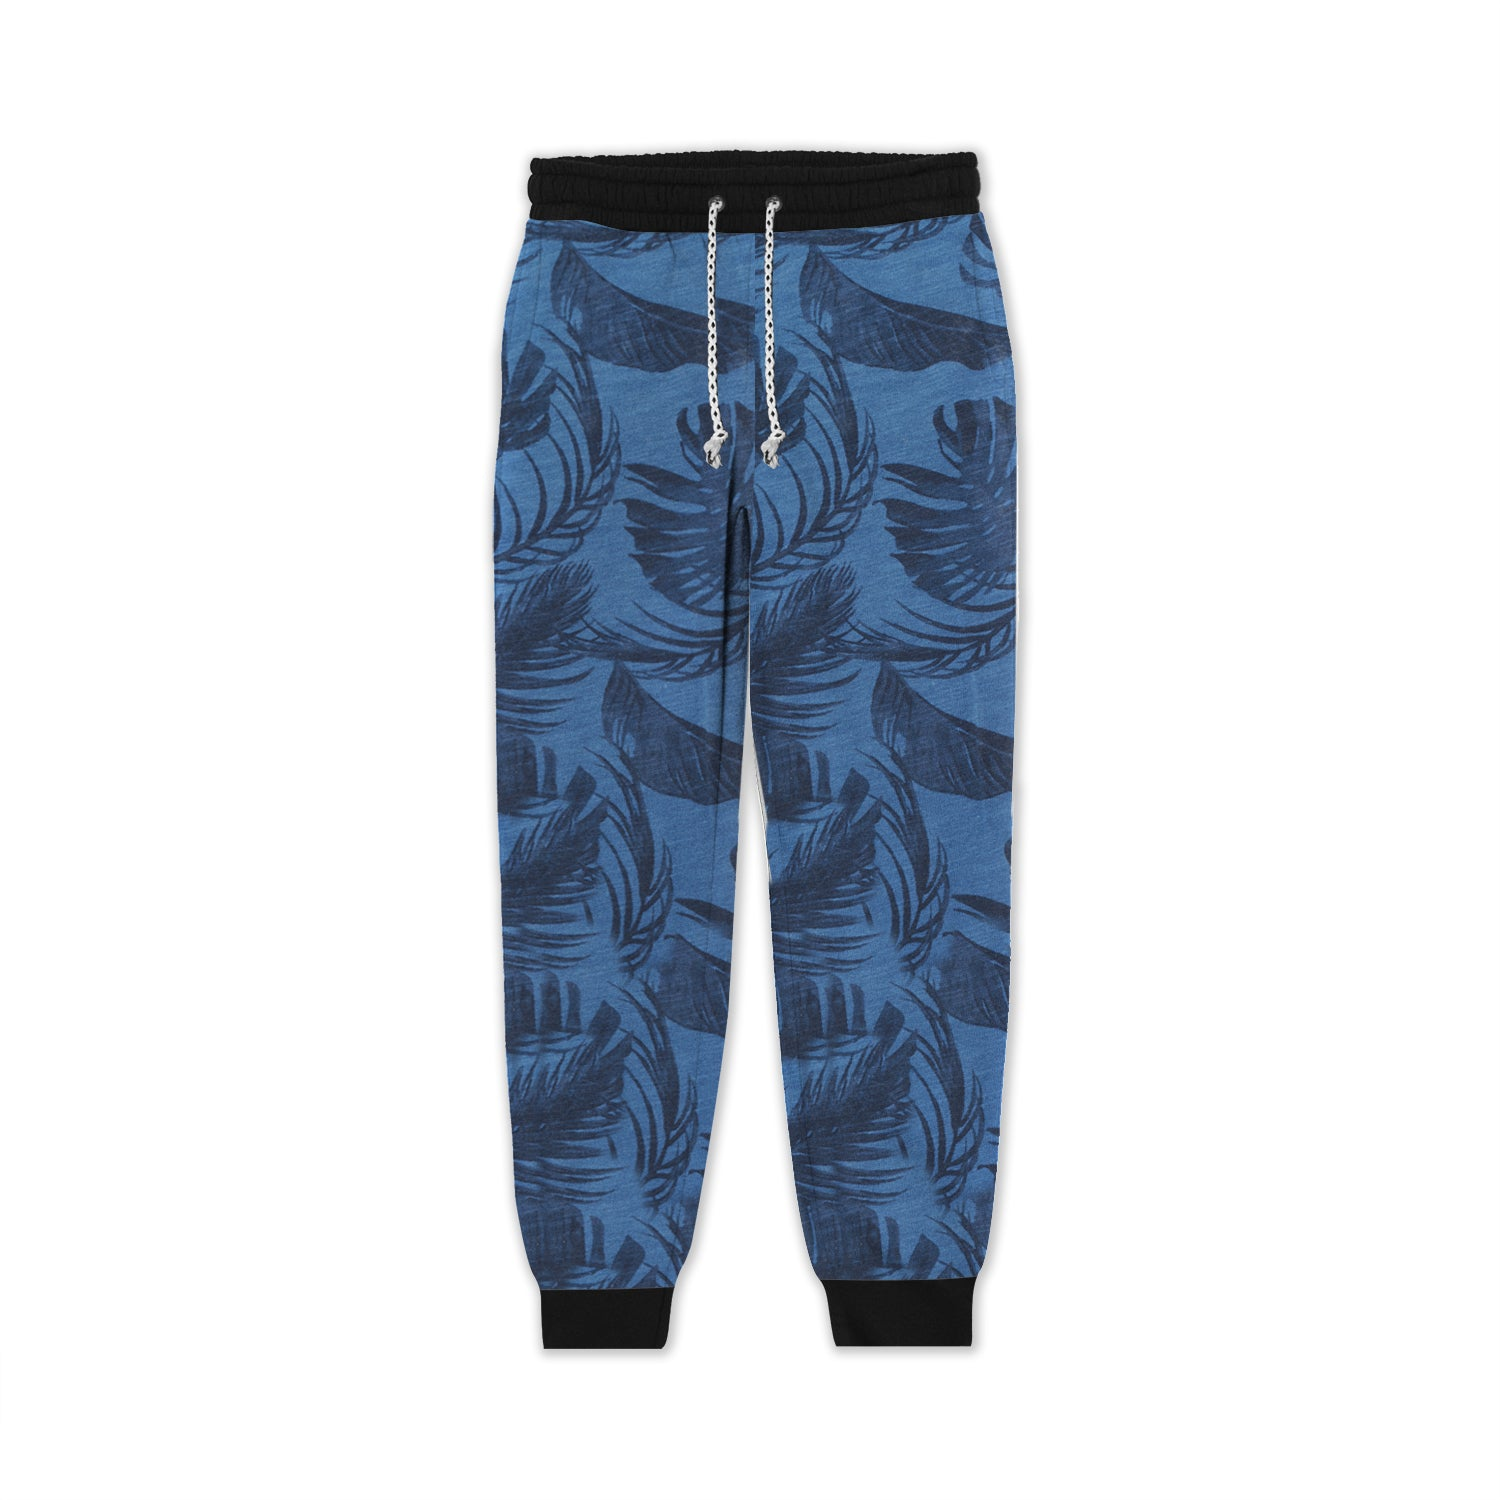 Red Pearl Terry Fleece Slim Fit Jogger Trouser For Kids-Blue with Allover Leaf Print-BE13353